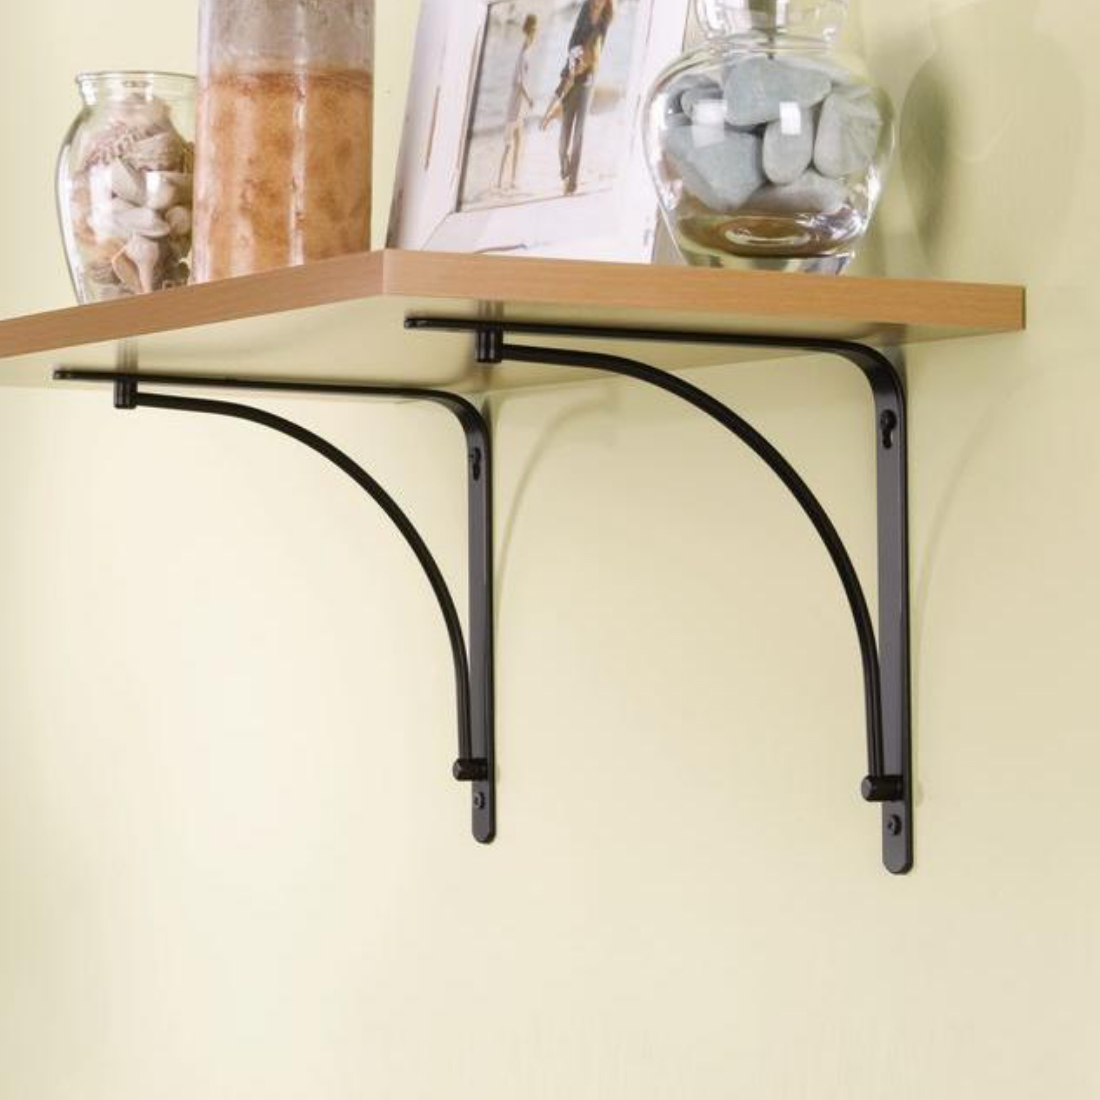 Shelving Brackets & Accessories